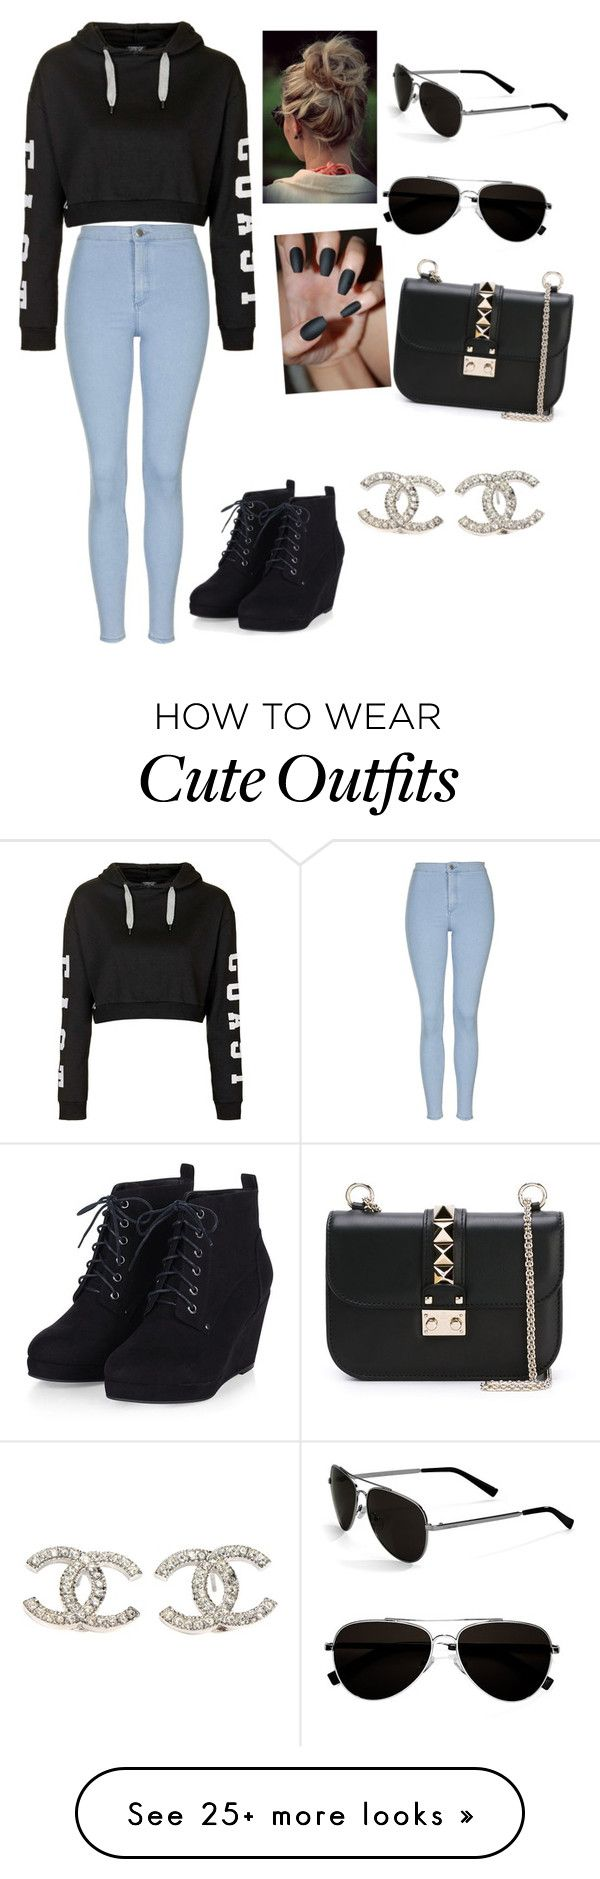 """Cute outfit"" by babygirltaetae on Polyvore featuring Topshop, Calvin Klein, Valentino, Chanel, women's clothing, women, female, woman, misses and juniors"